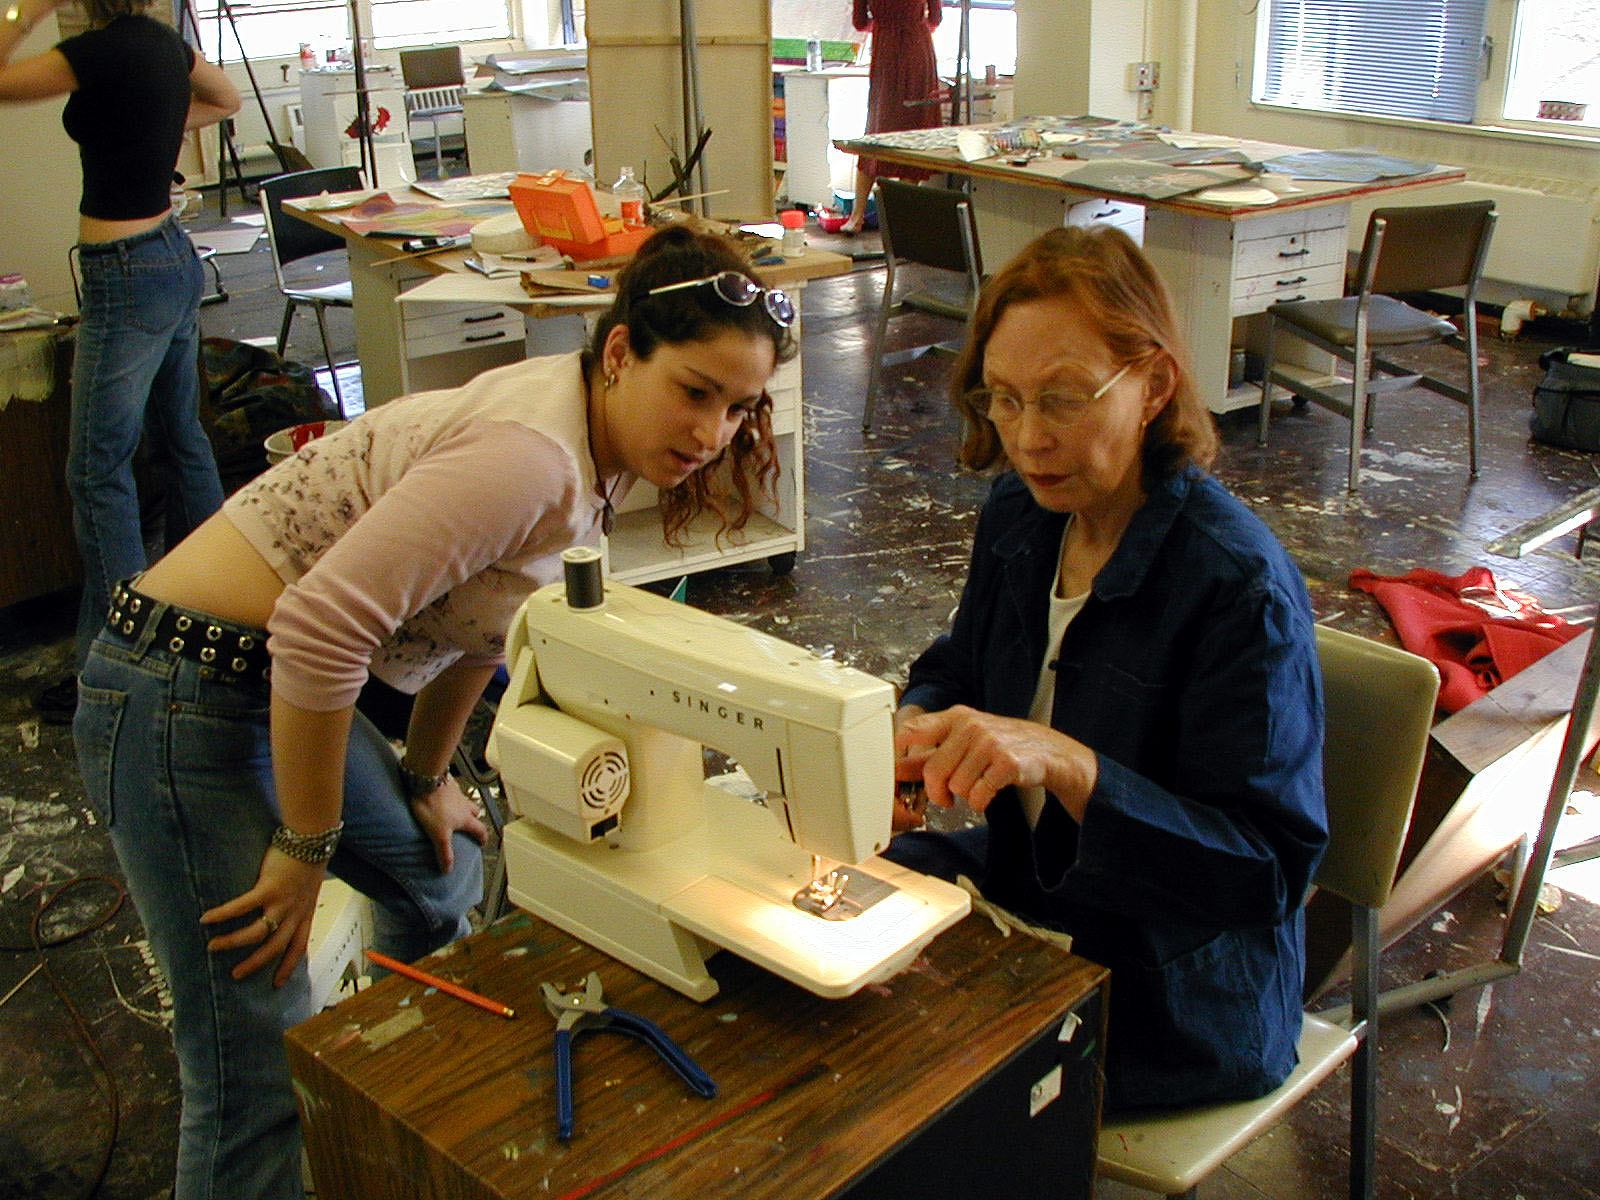 (right) Jackie Matisse instructing a student on how to use a sewing machine